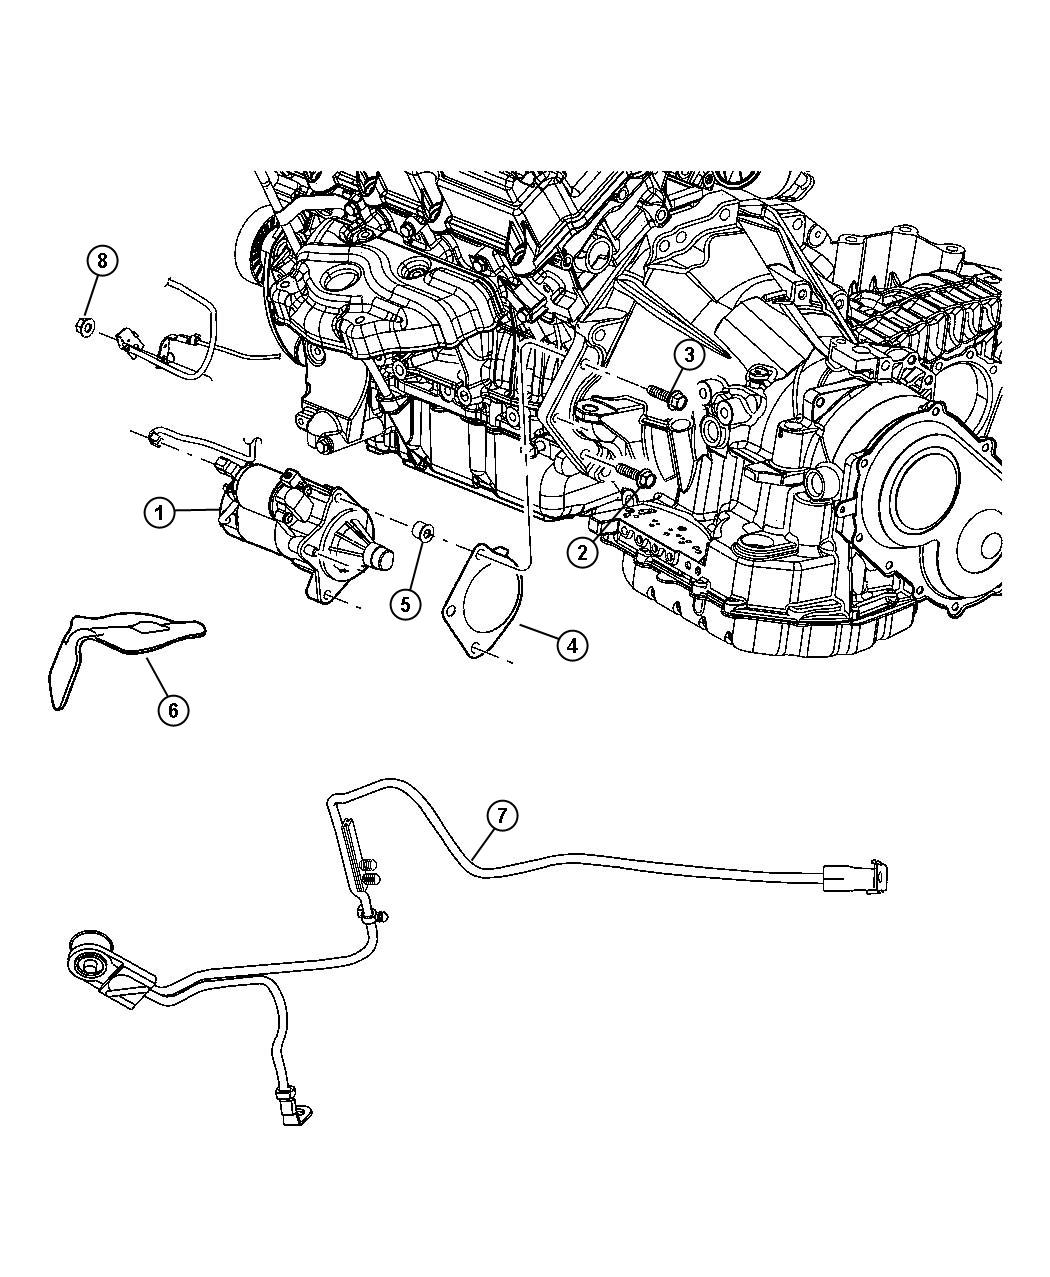 Chrysler Sebring Starter Engine Export Maintenance